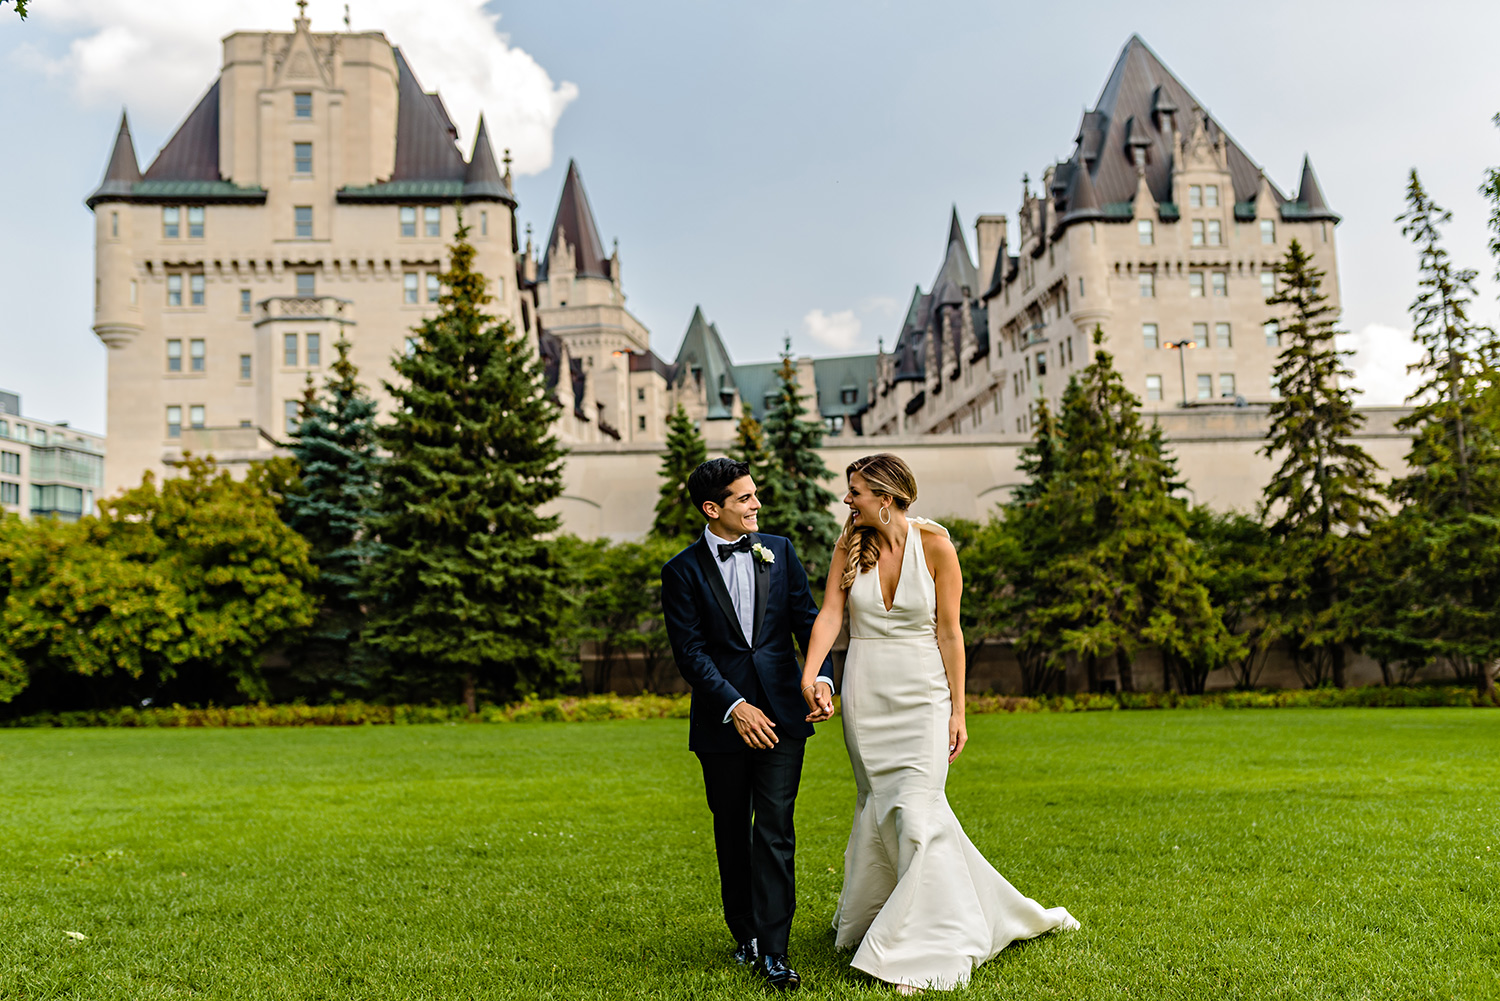 photograph of a bride and groom in downtown ottawa near the chateau laurier